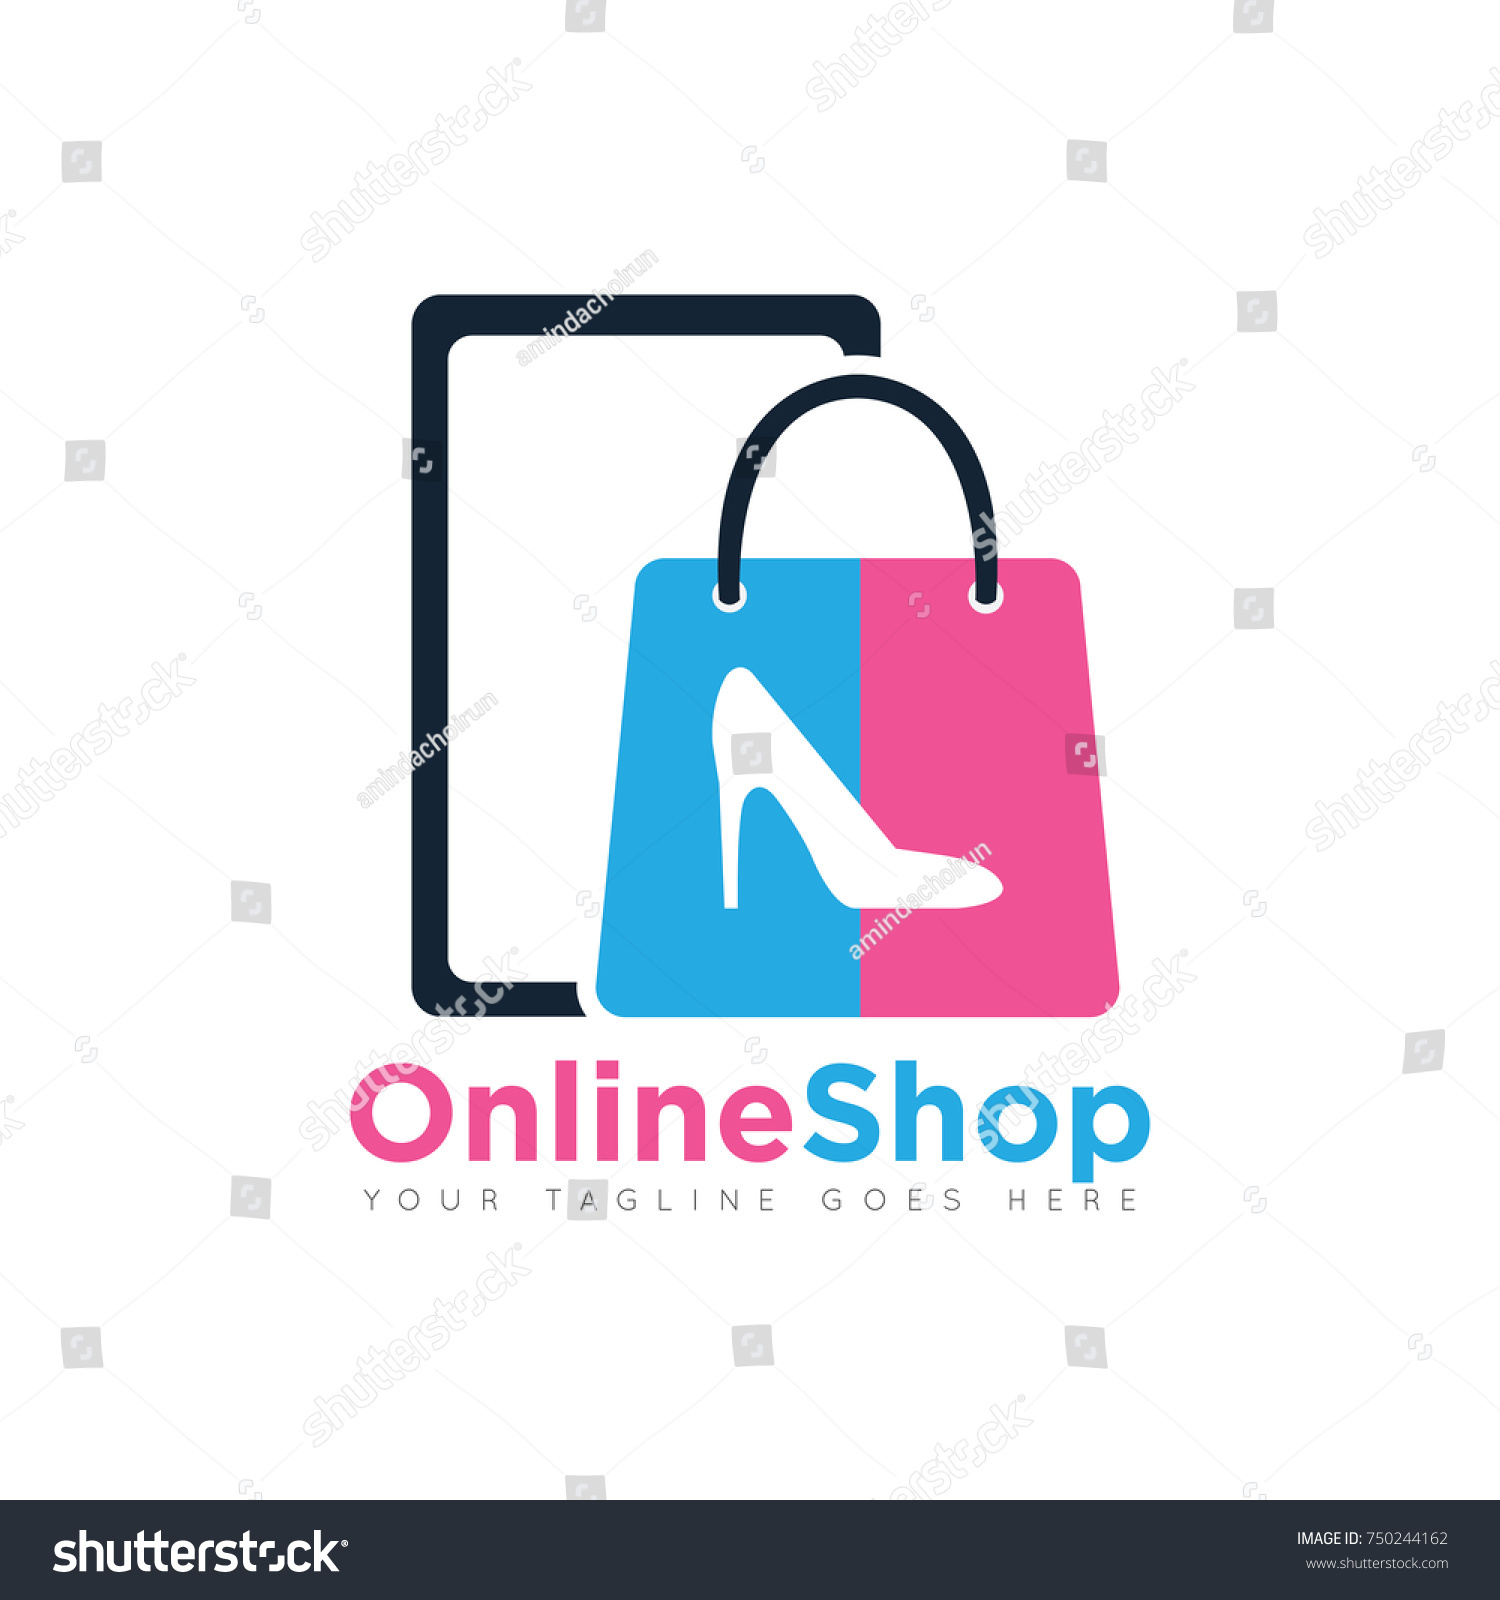 Design Online Shop Online Shopping Bag Logo Design Template Stock Vector Royalty